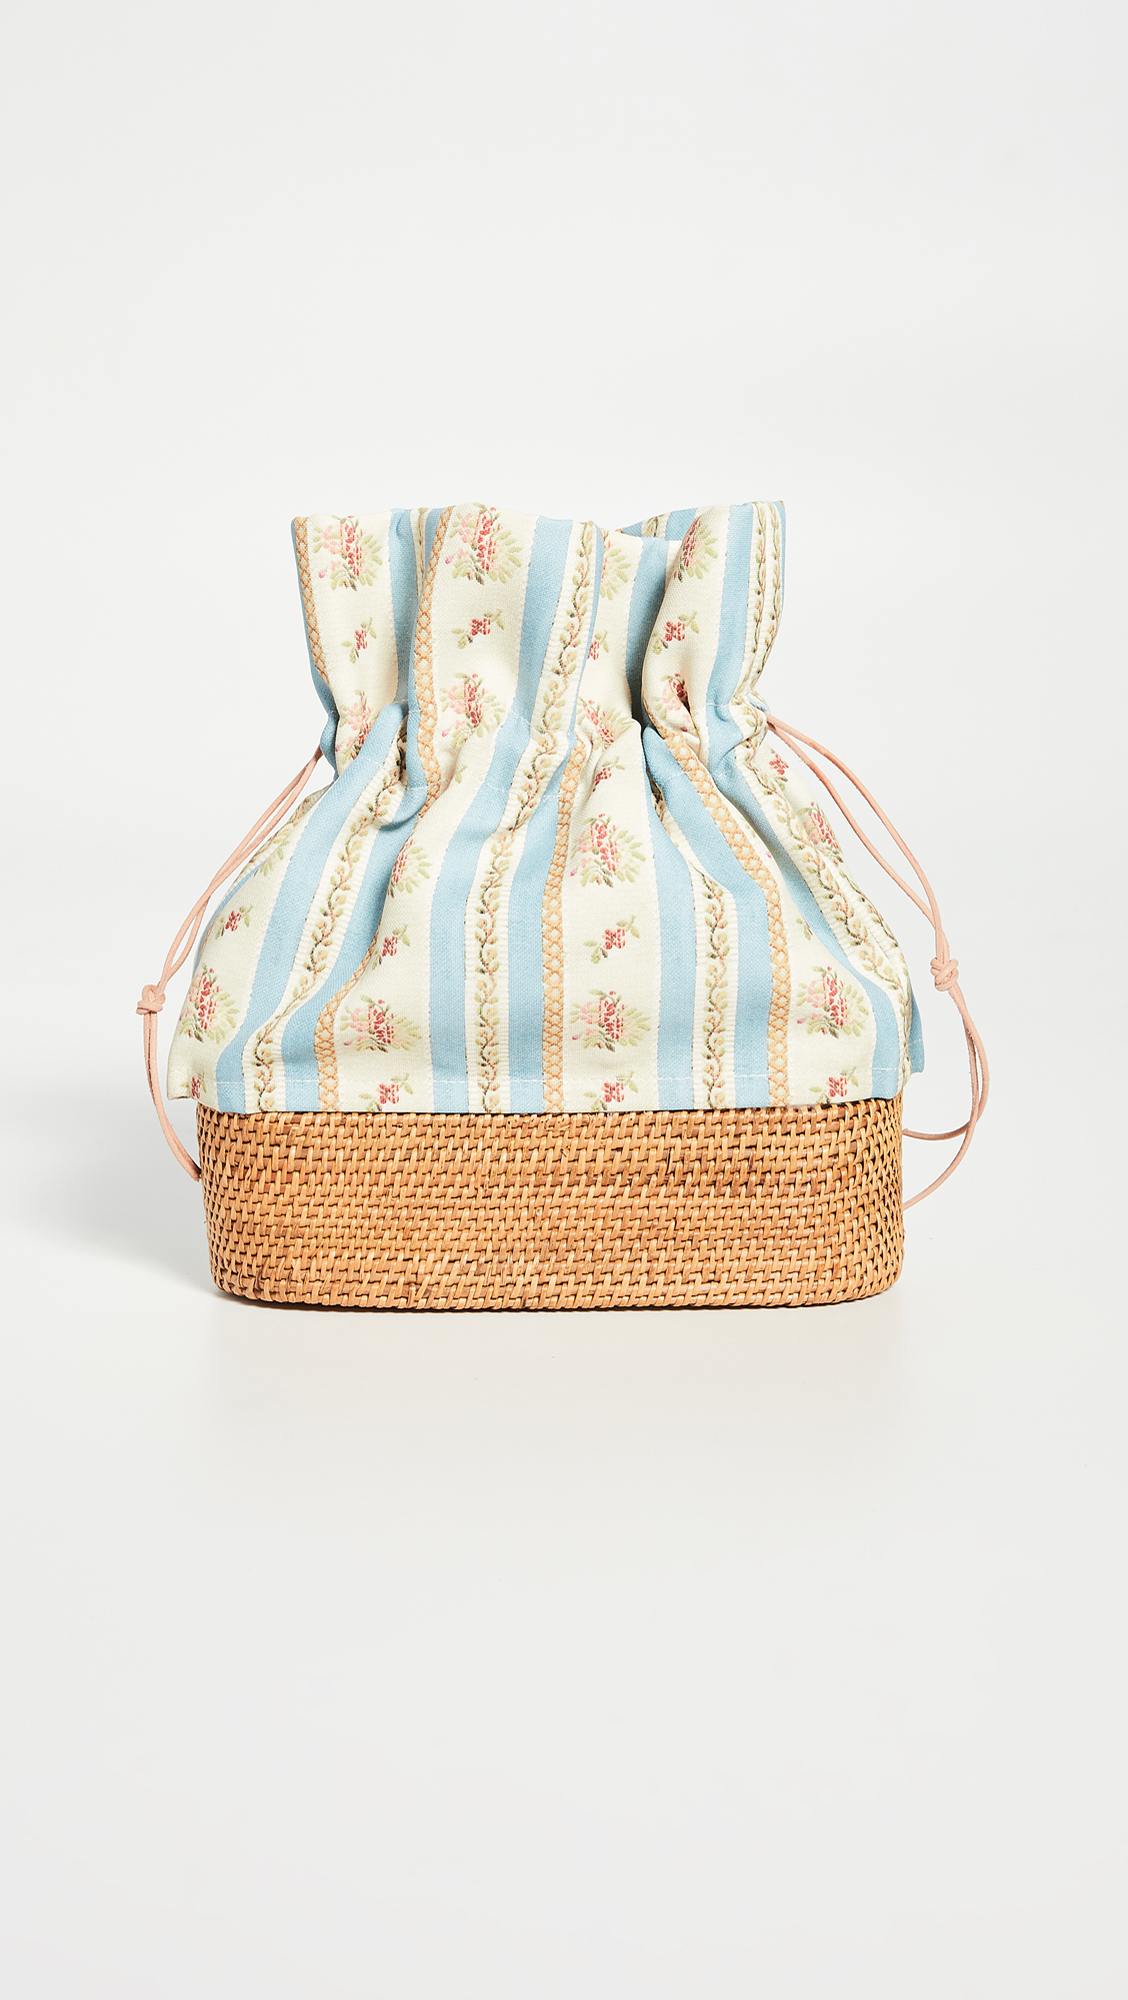 Floral Canvas and Woven Rattan Bag